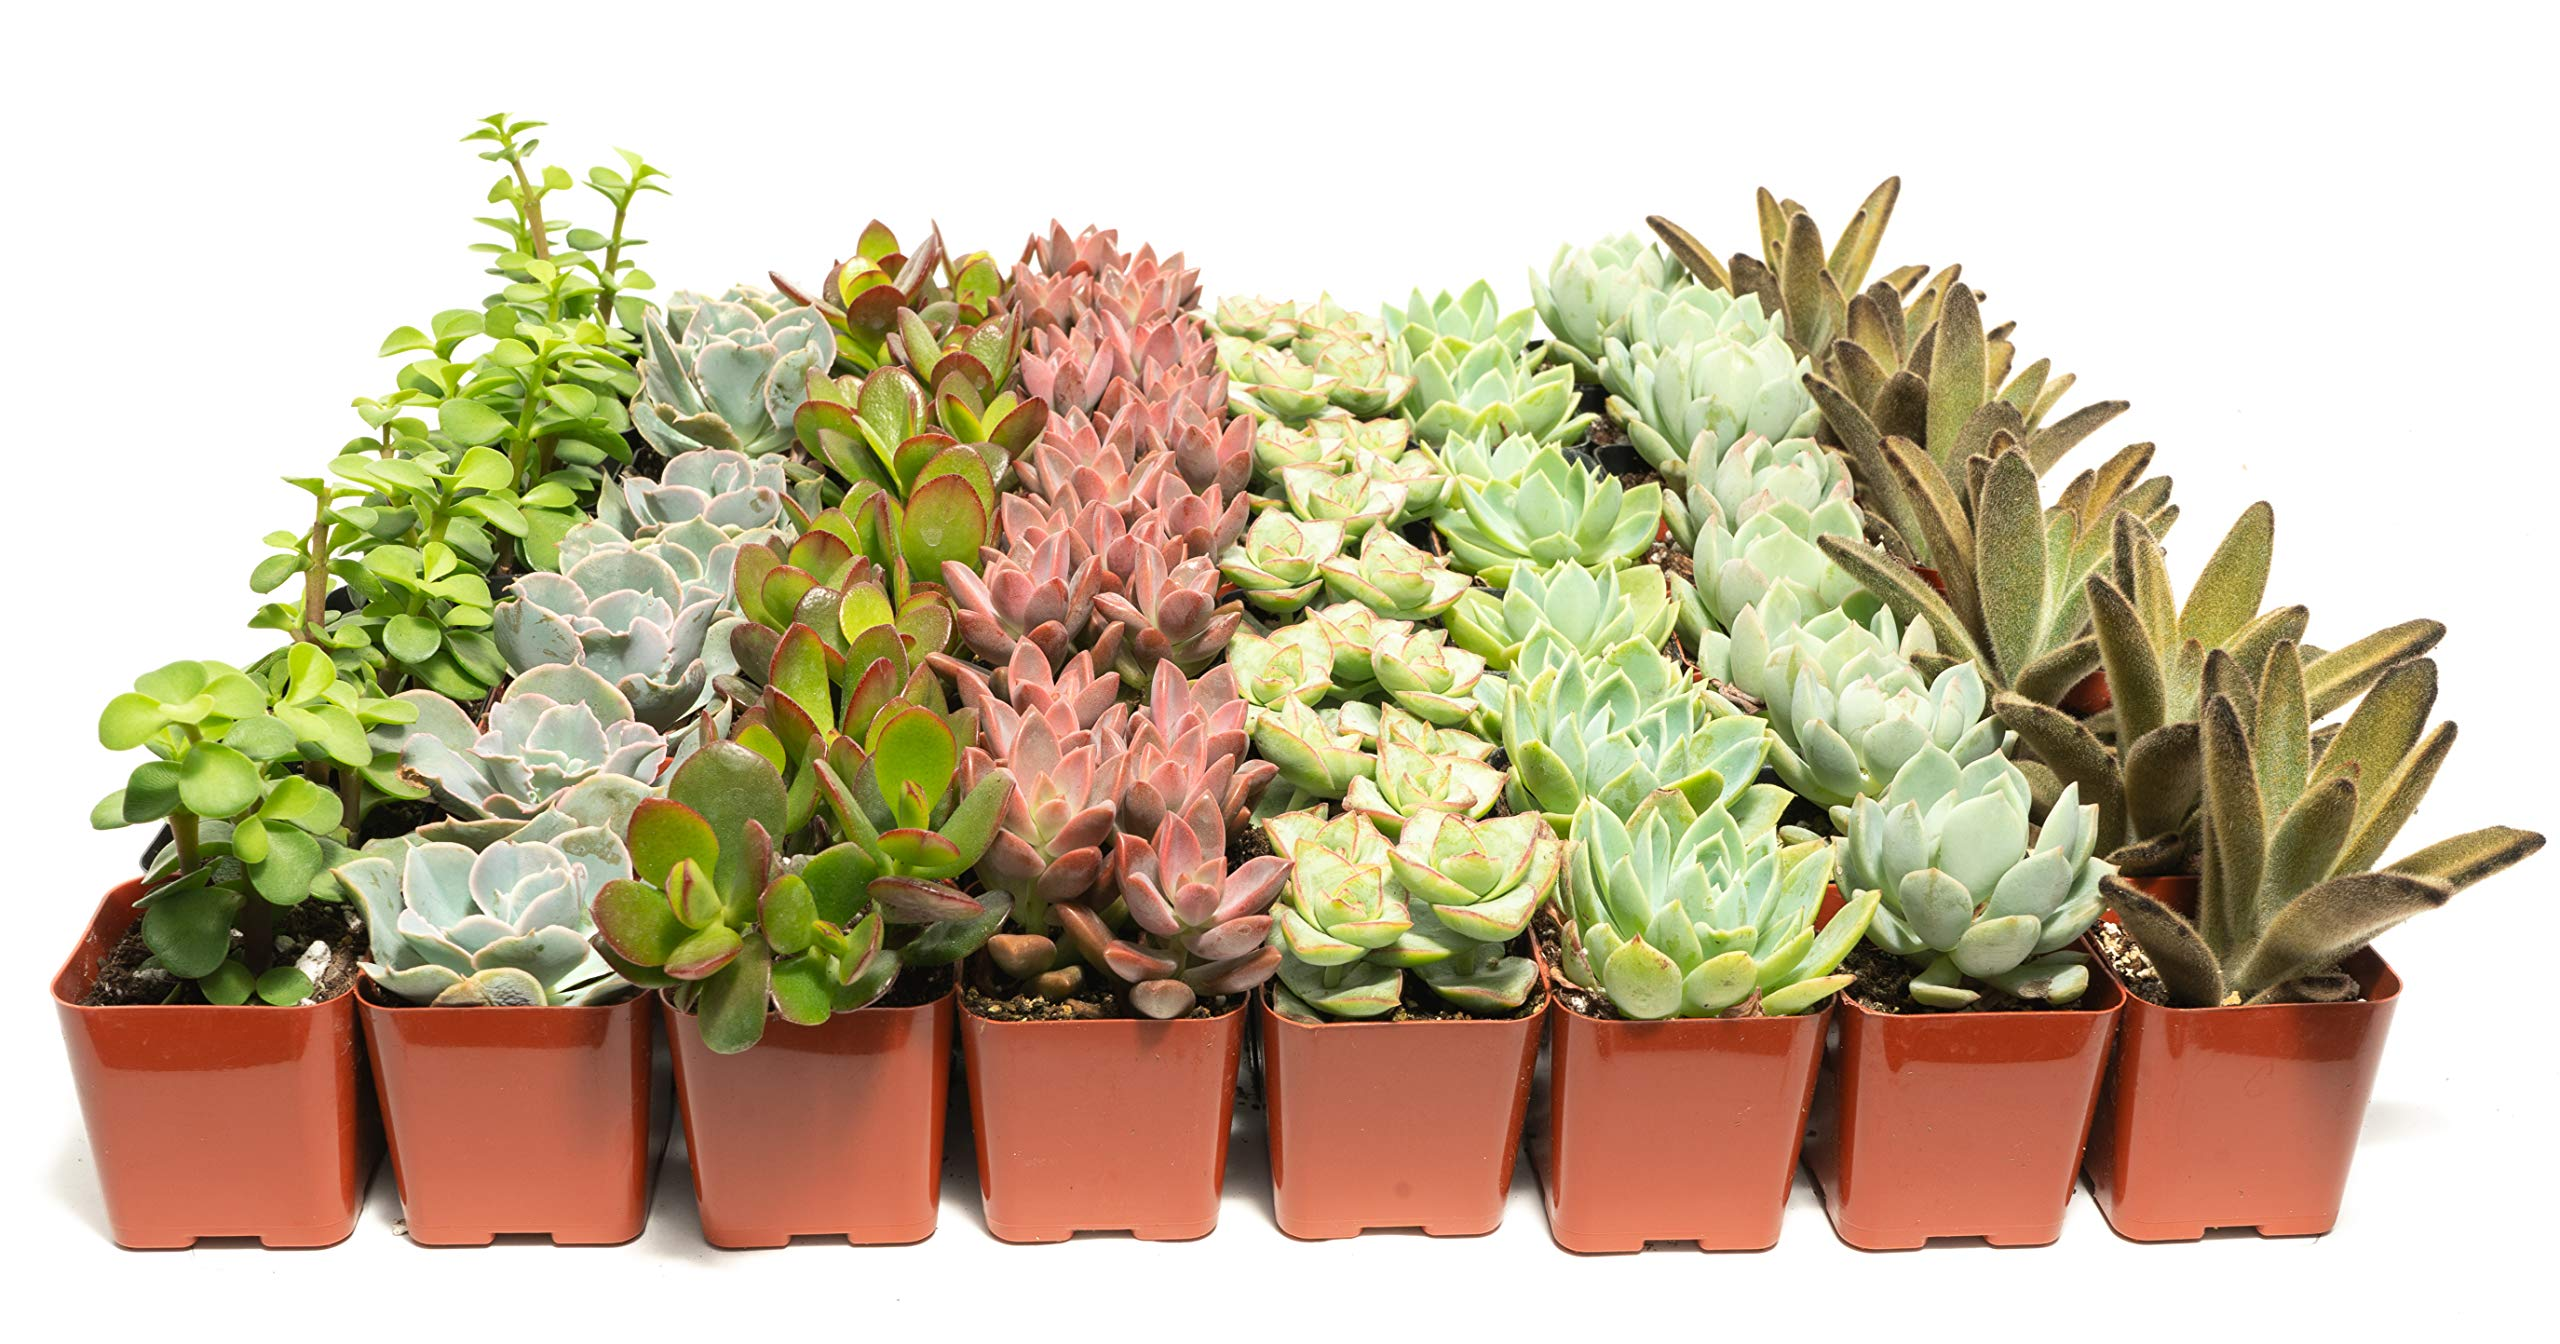 Succulent Assorted Pack- Perfect for Weddings, Party Favors, Home Gardens, and Social Events by Jiimz (64 Pack)